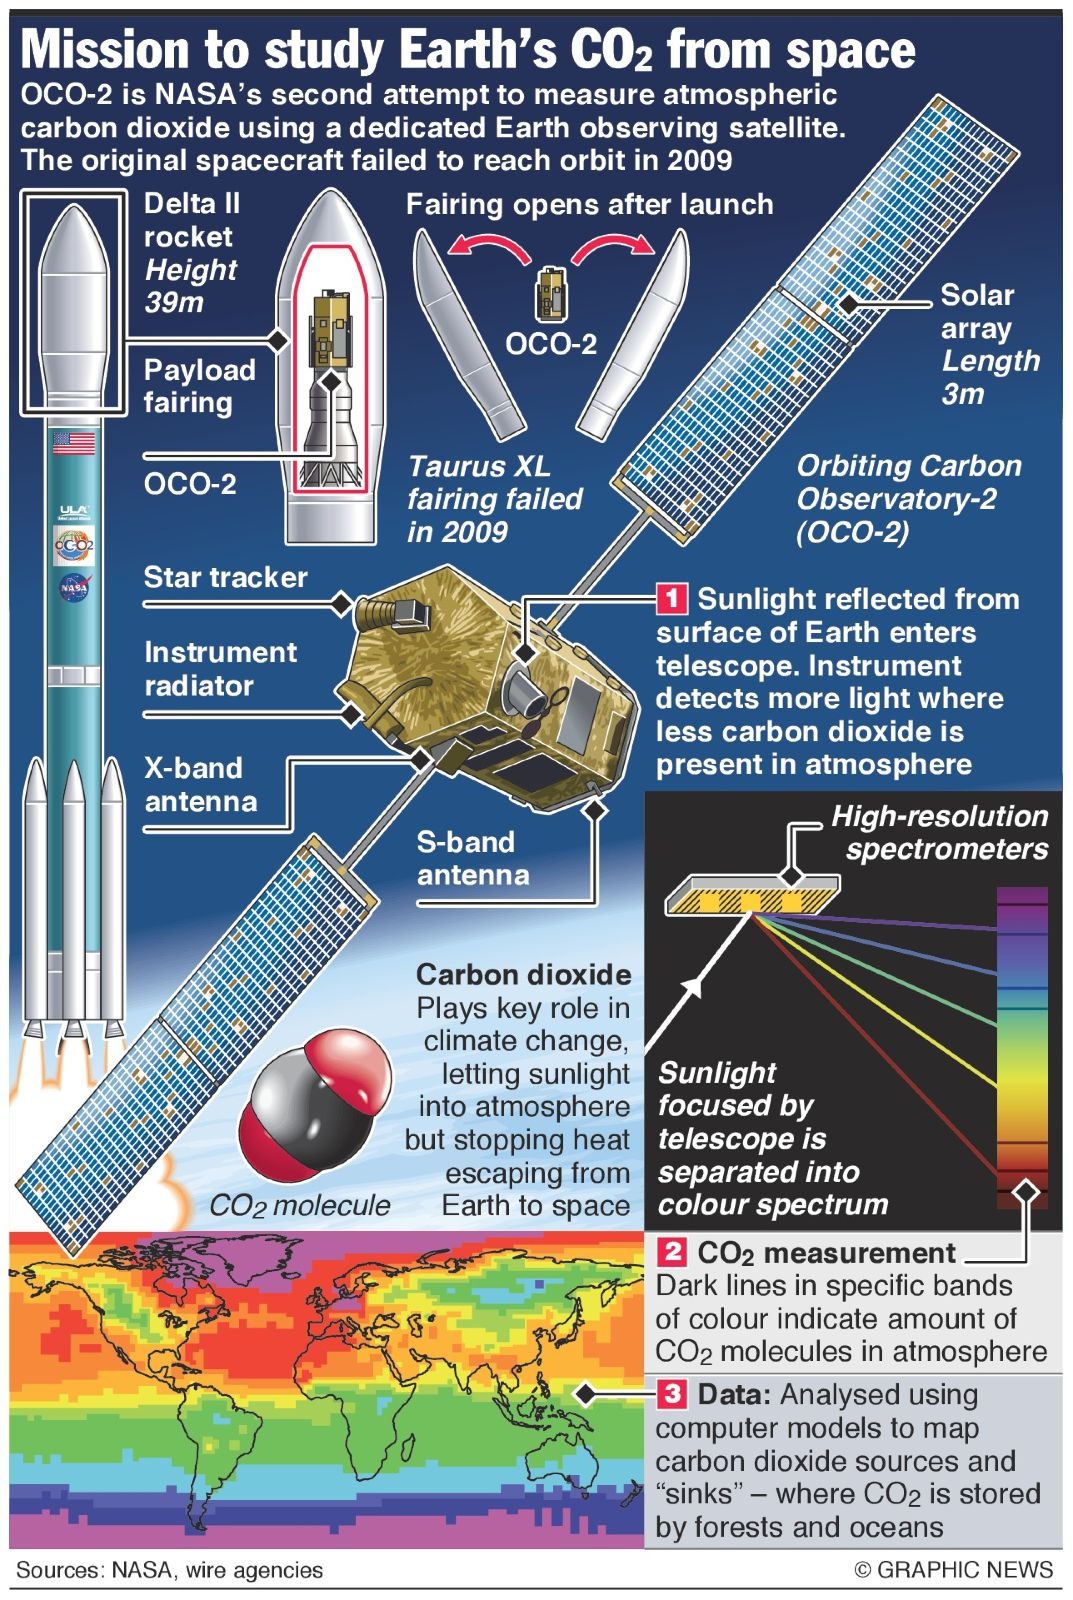 How the new OCO-2 satellite provided valuable input for creating the high-res simulation.